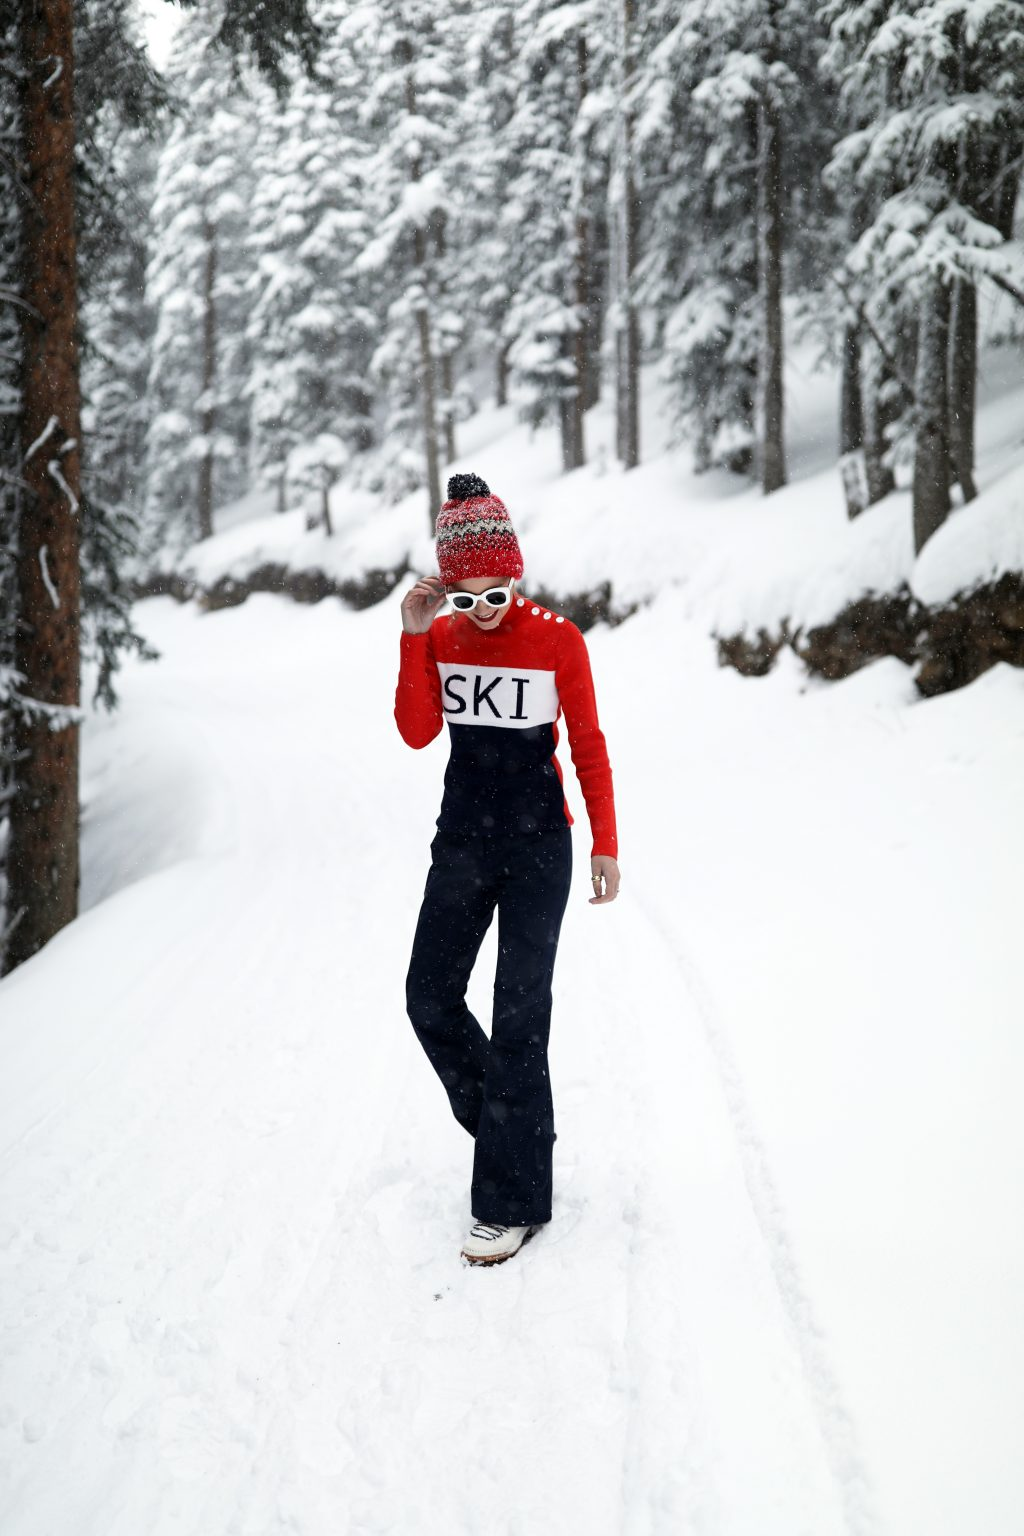 blair-eadie-atlantic-pacific-ski-moncler-trip-colorado-aspen-nyc-red-white-blue-outfit-holidays-polo-st-regis-moncler